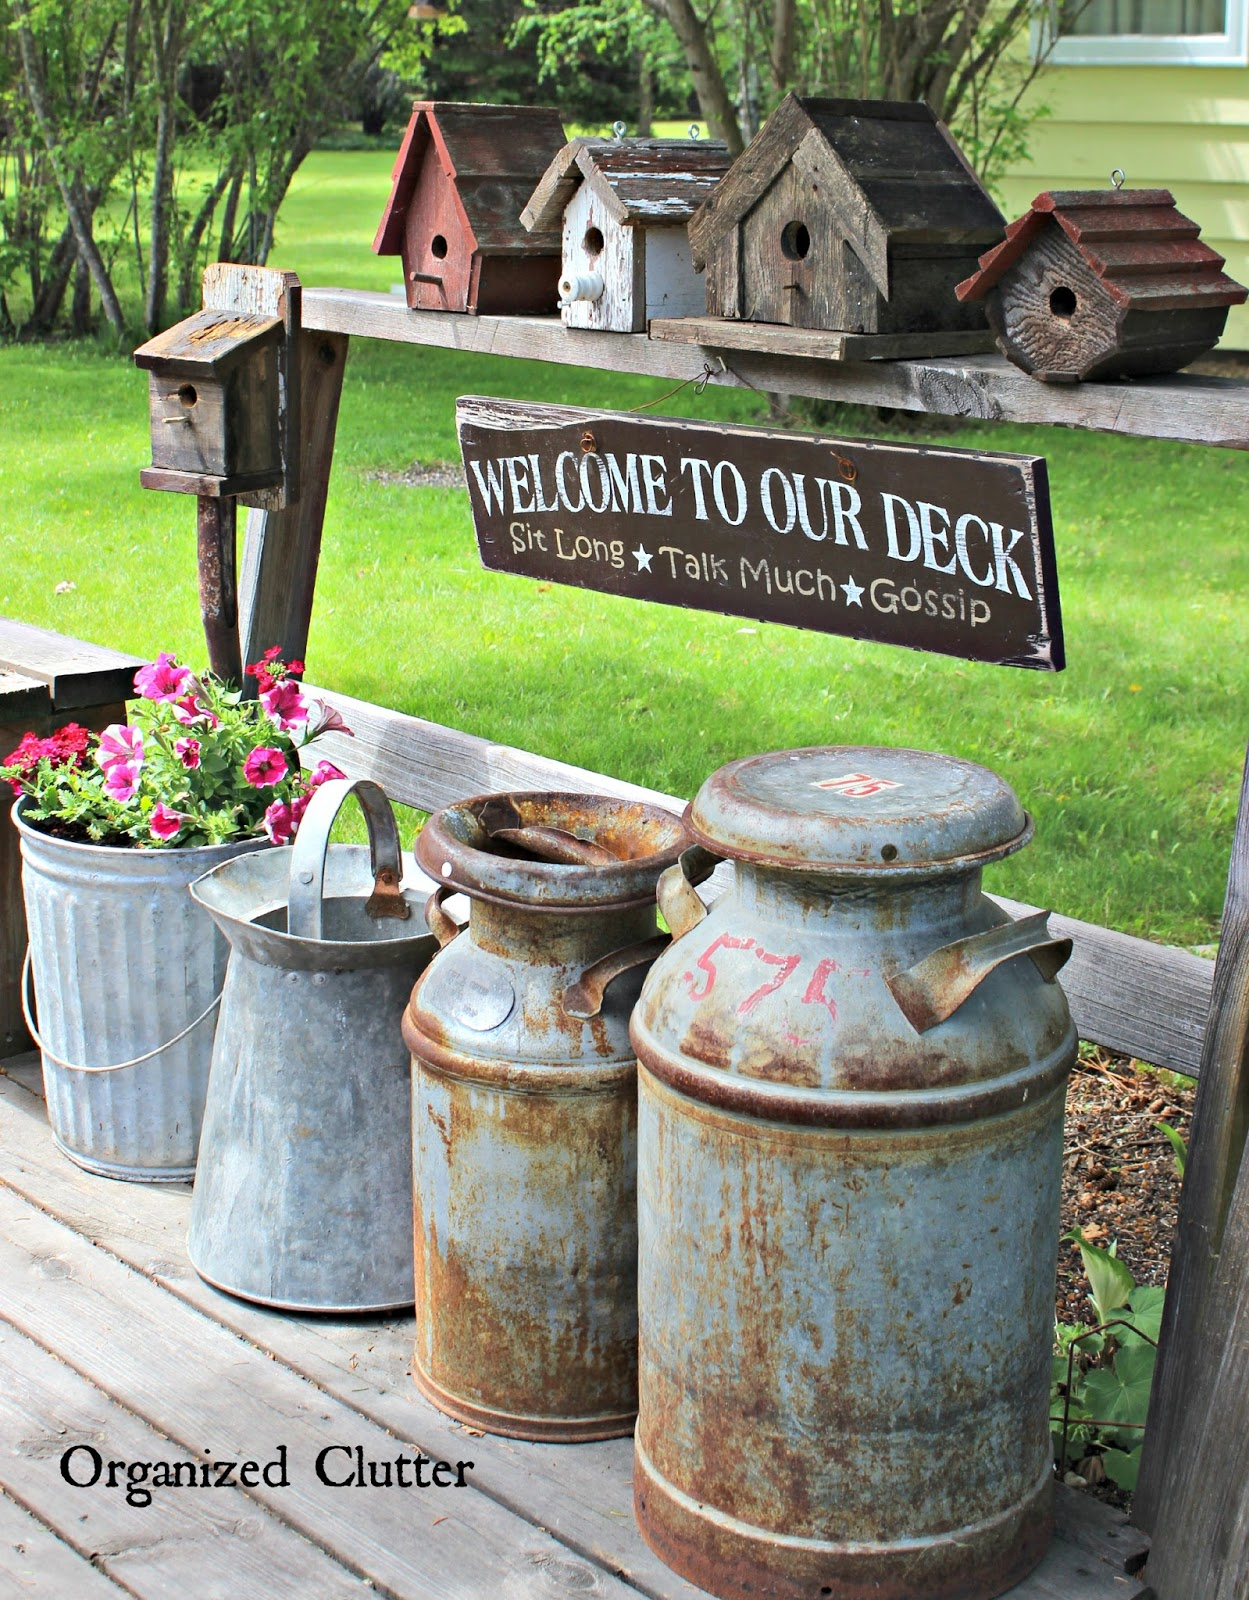 Decorating the deck with rustic birdhouses organized clutter for Outdoor decorative items